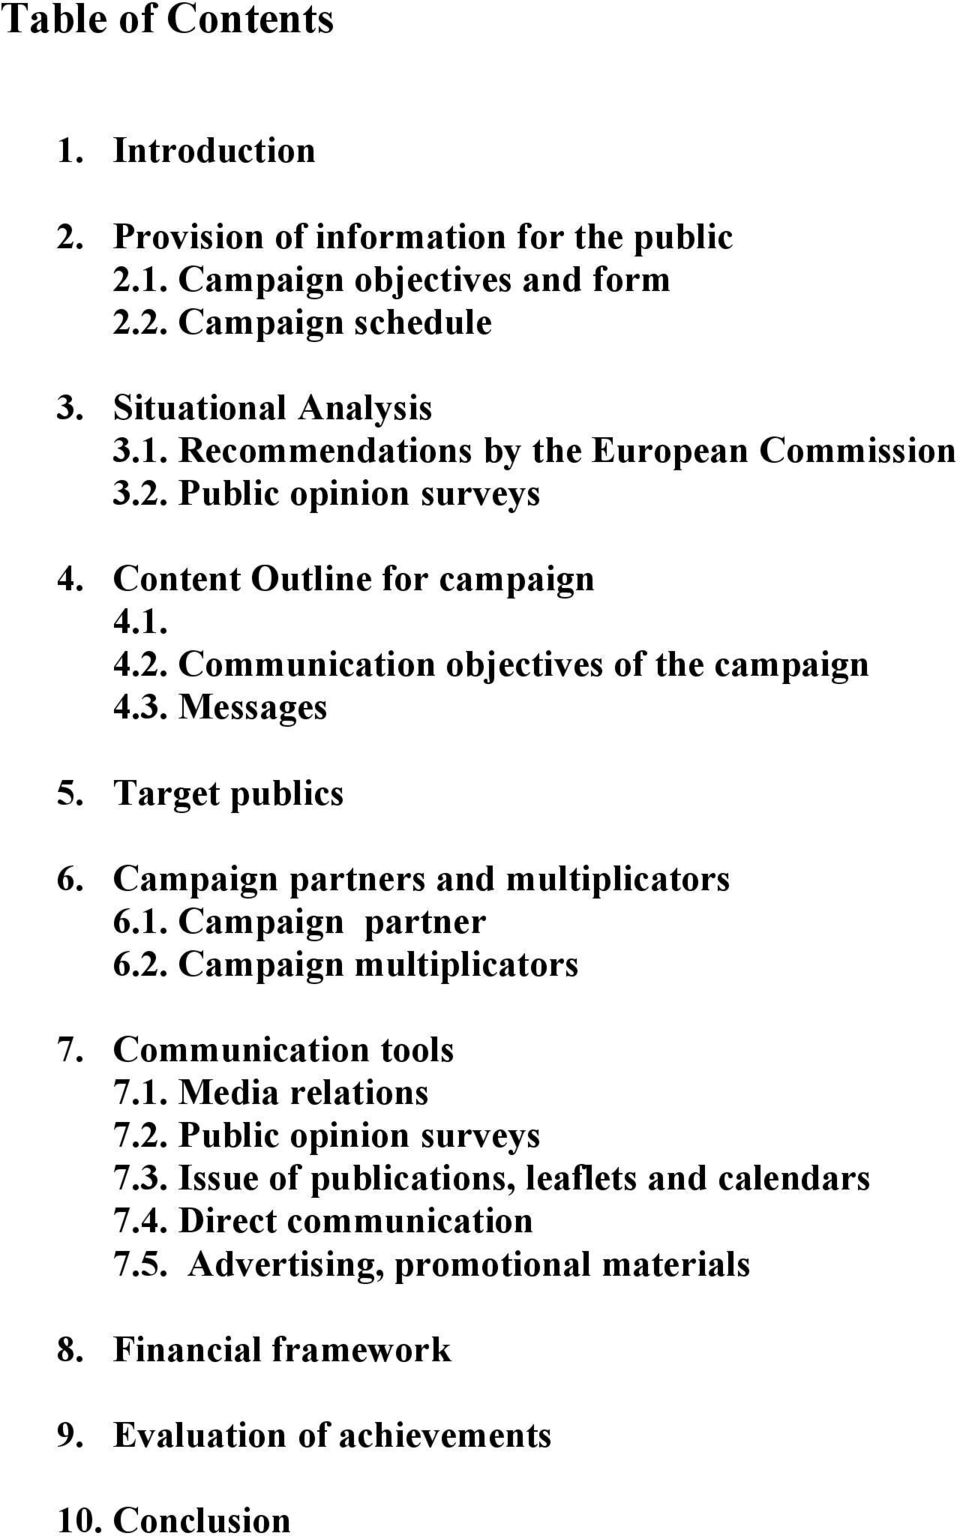 Campaign partners and multiplicators 6.1. Campaign partner 6.2. Campaign multiplicators 7. Communication tools 7.1. Media relations 7.2. Public opinion surveys 7.3.